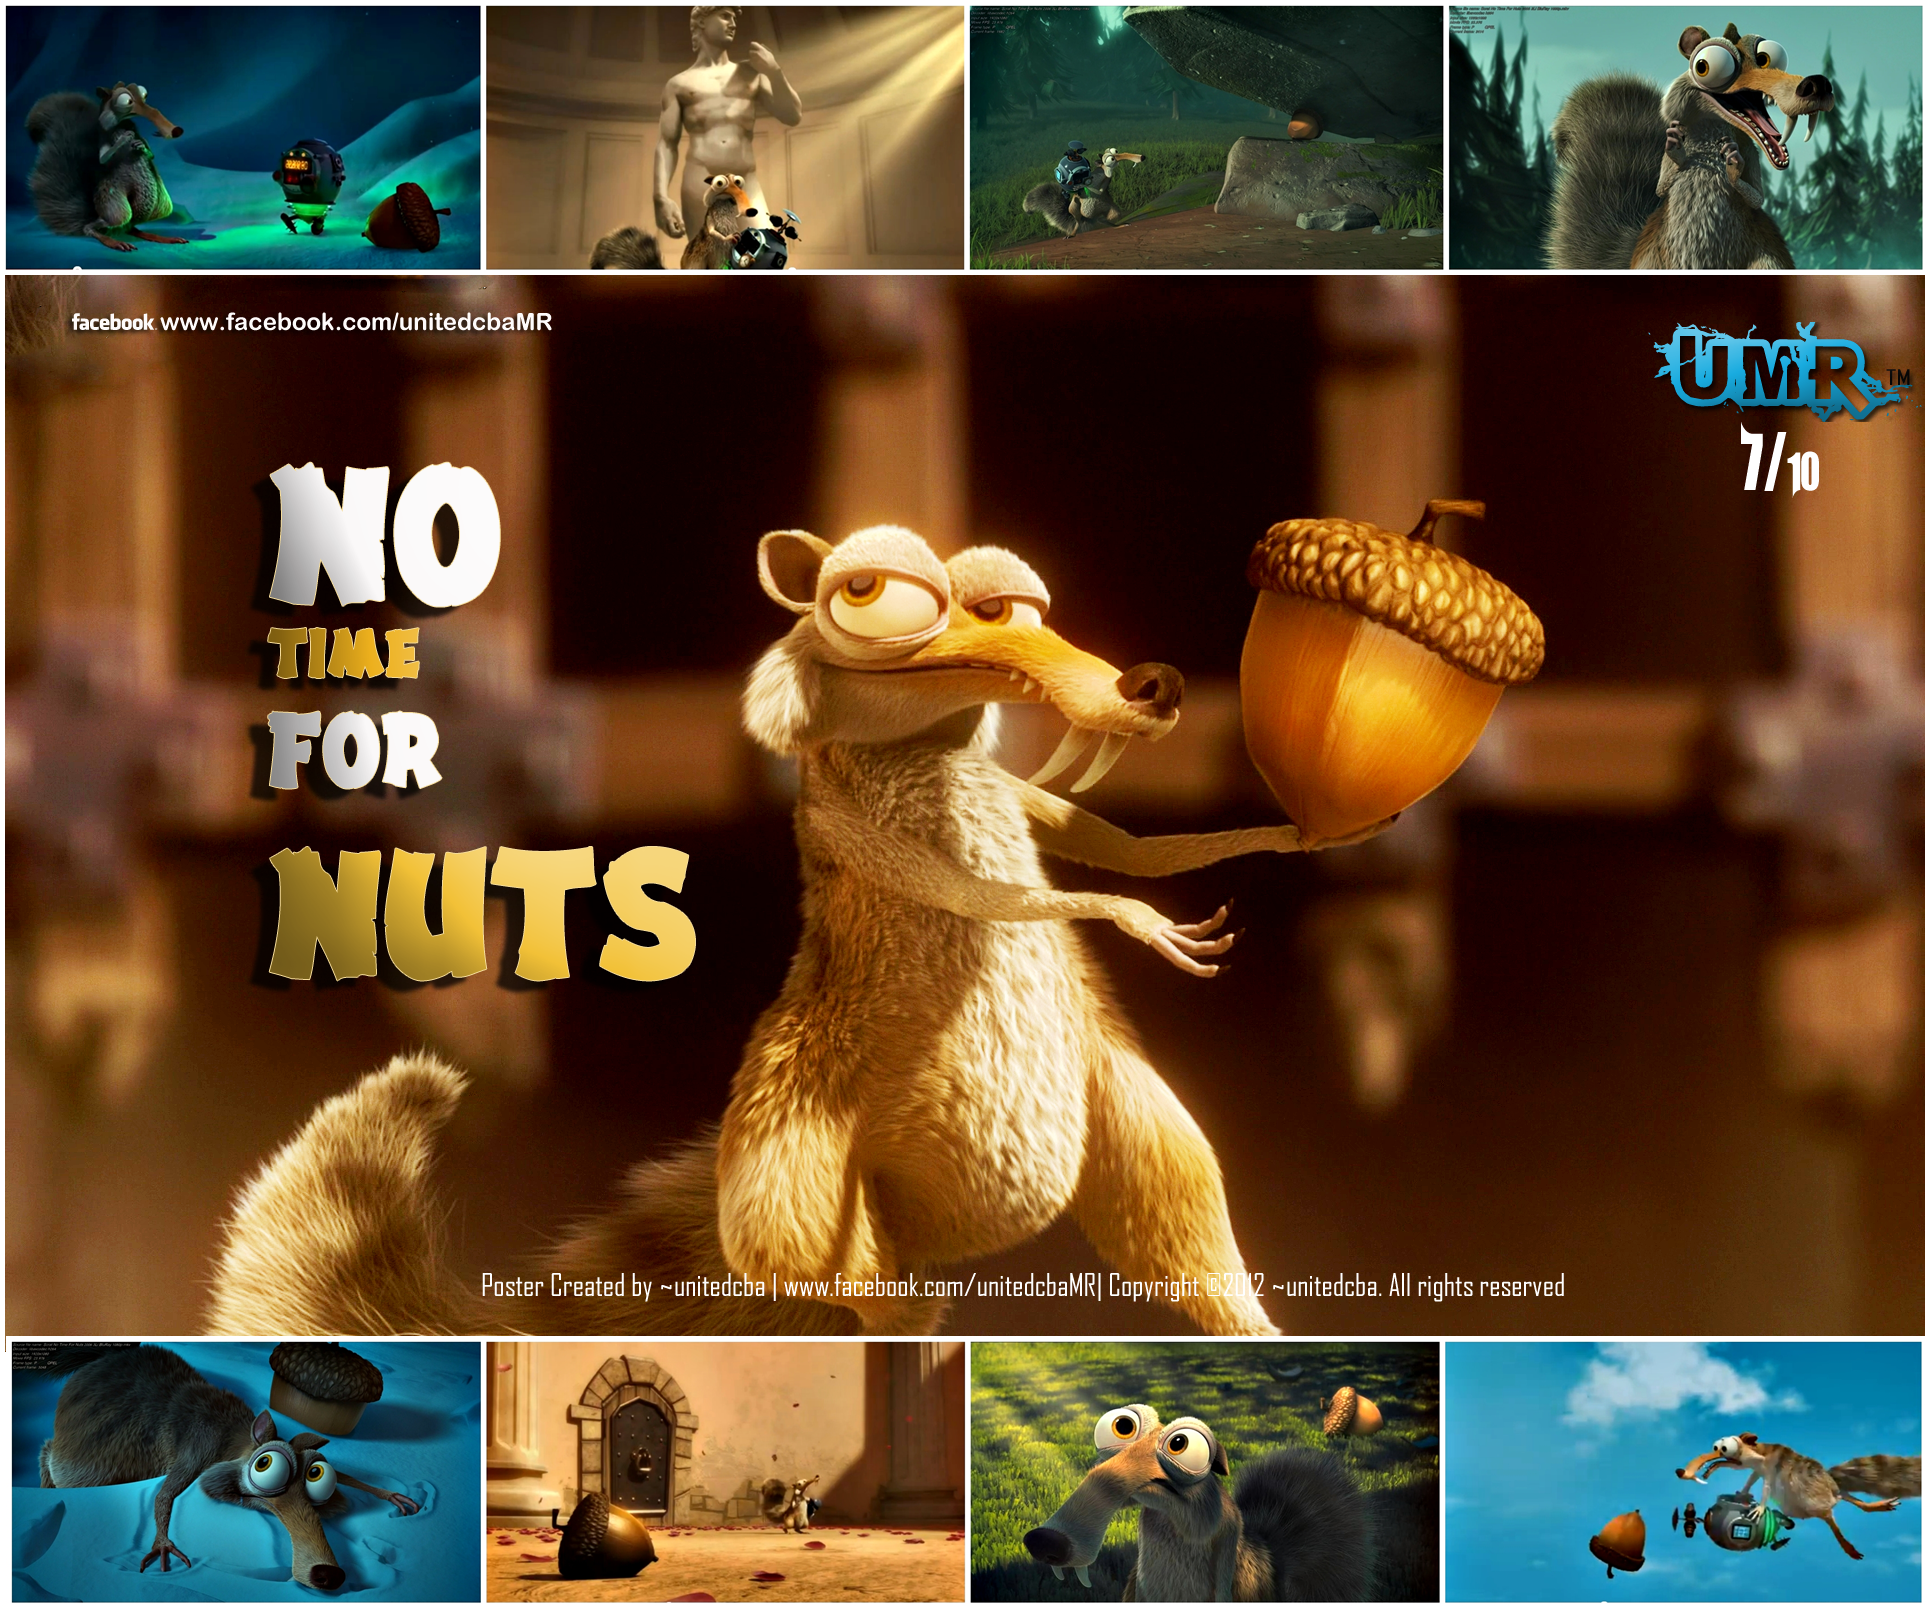 High Resolution Wallpaper   No Time For Nuts 1928x1608 px